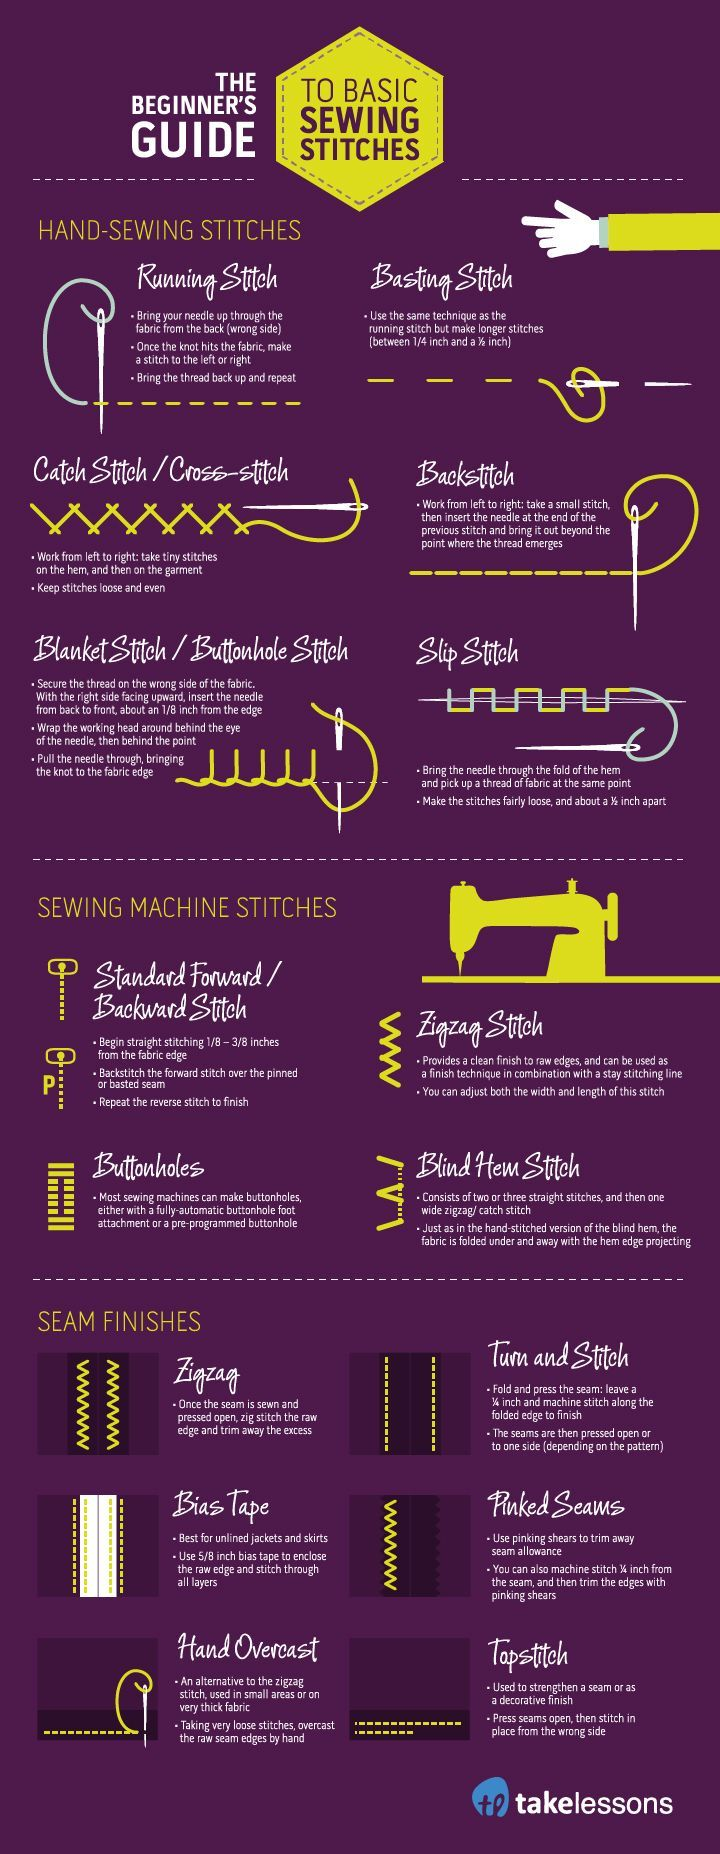 The Beginner's Guide to Basic Sewing Stitches [Infographic]